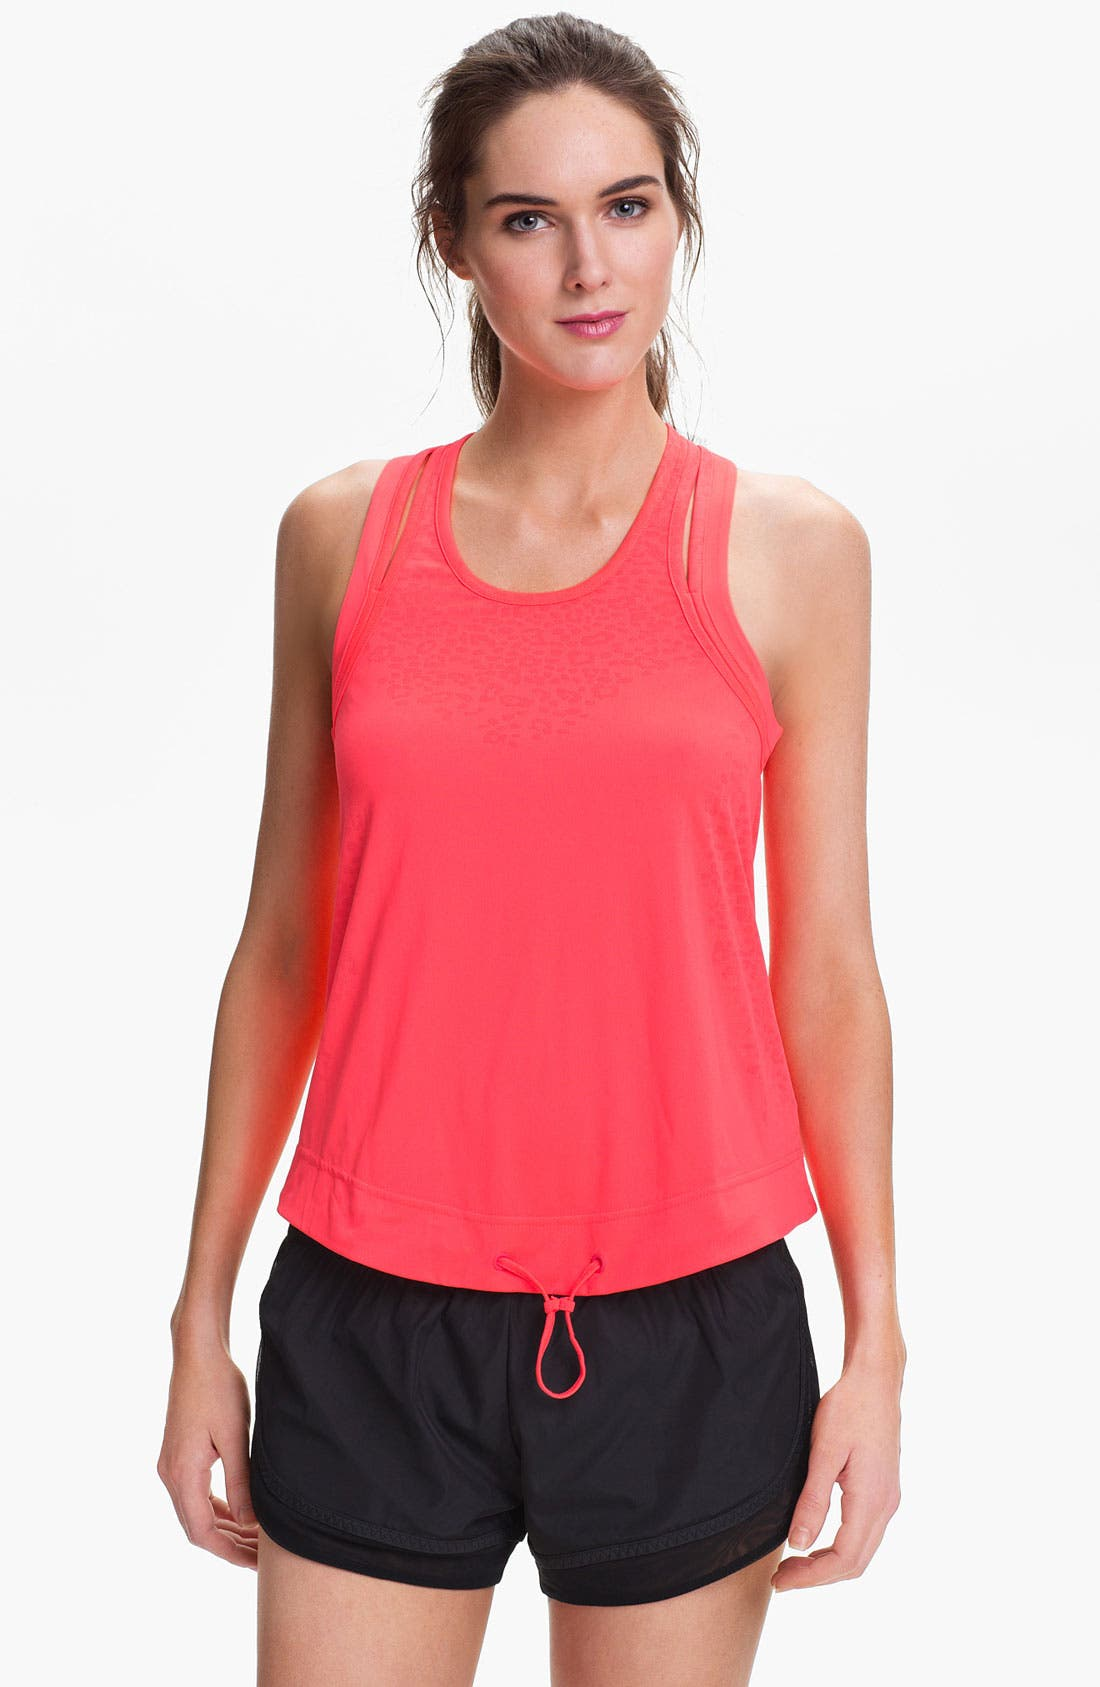 Alternate Image 1 Selected - adidas by Stella McCartney 'Elite' Performance Tank